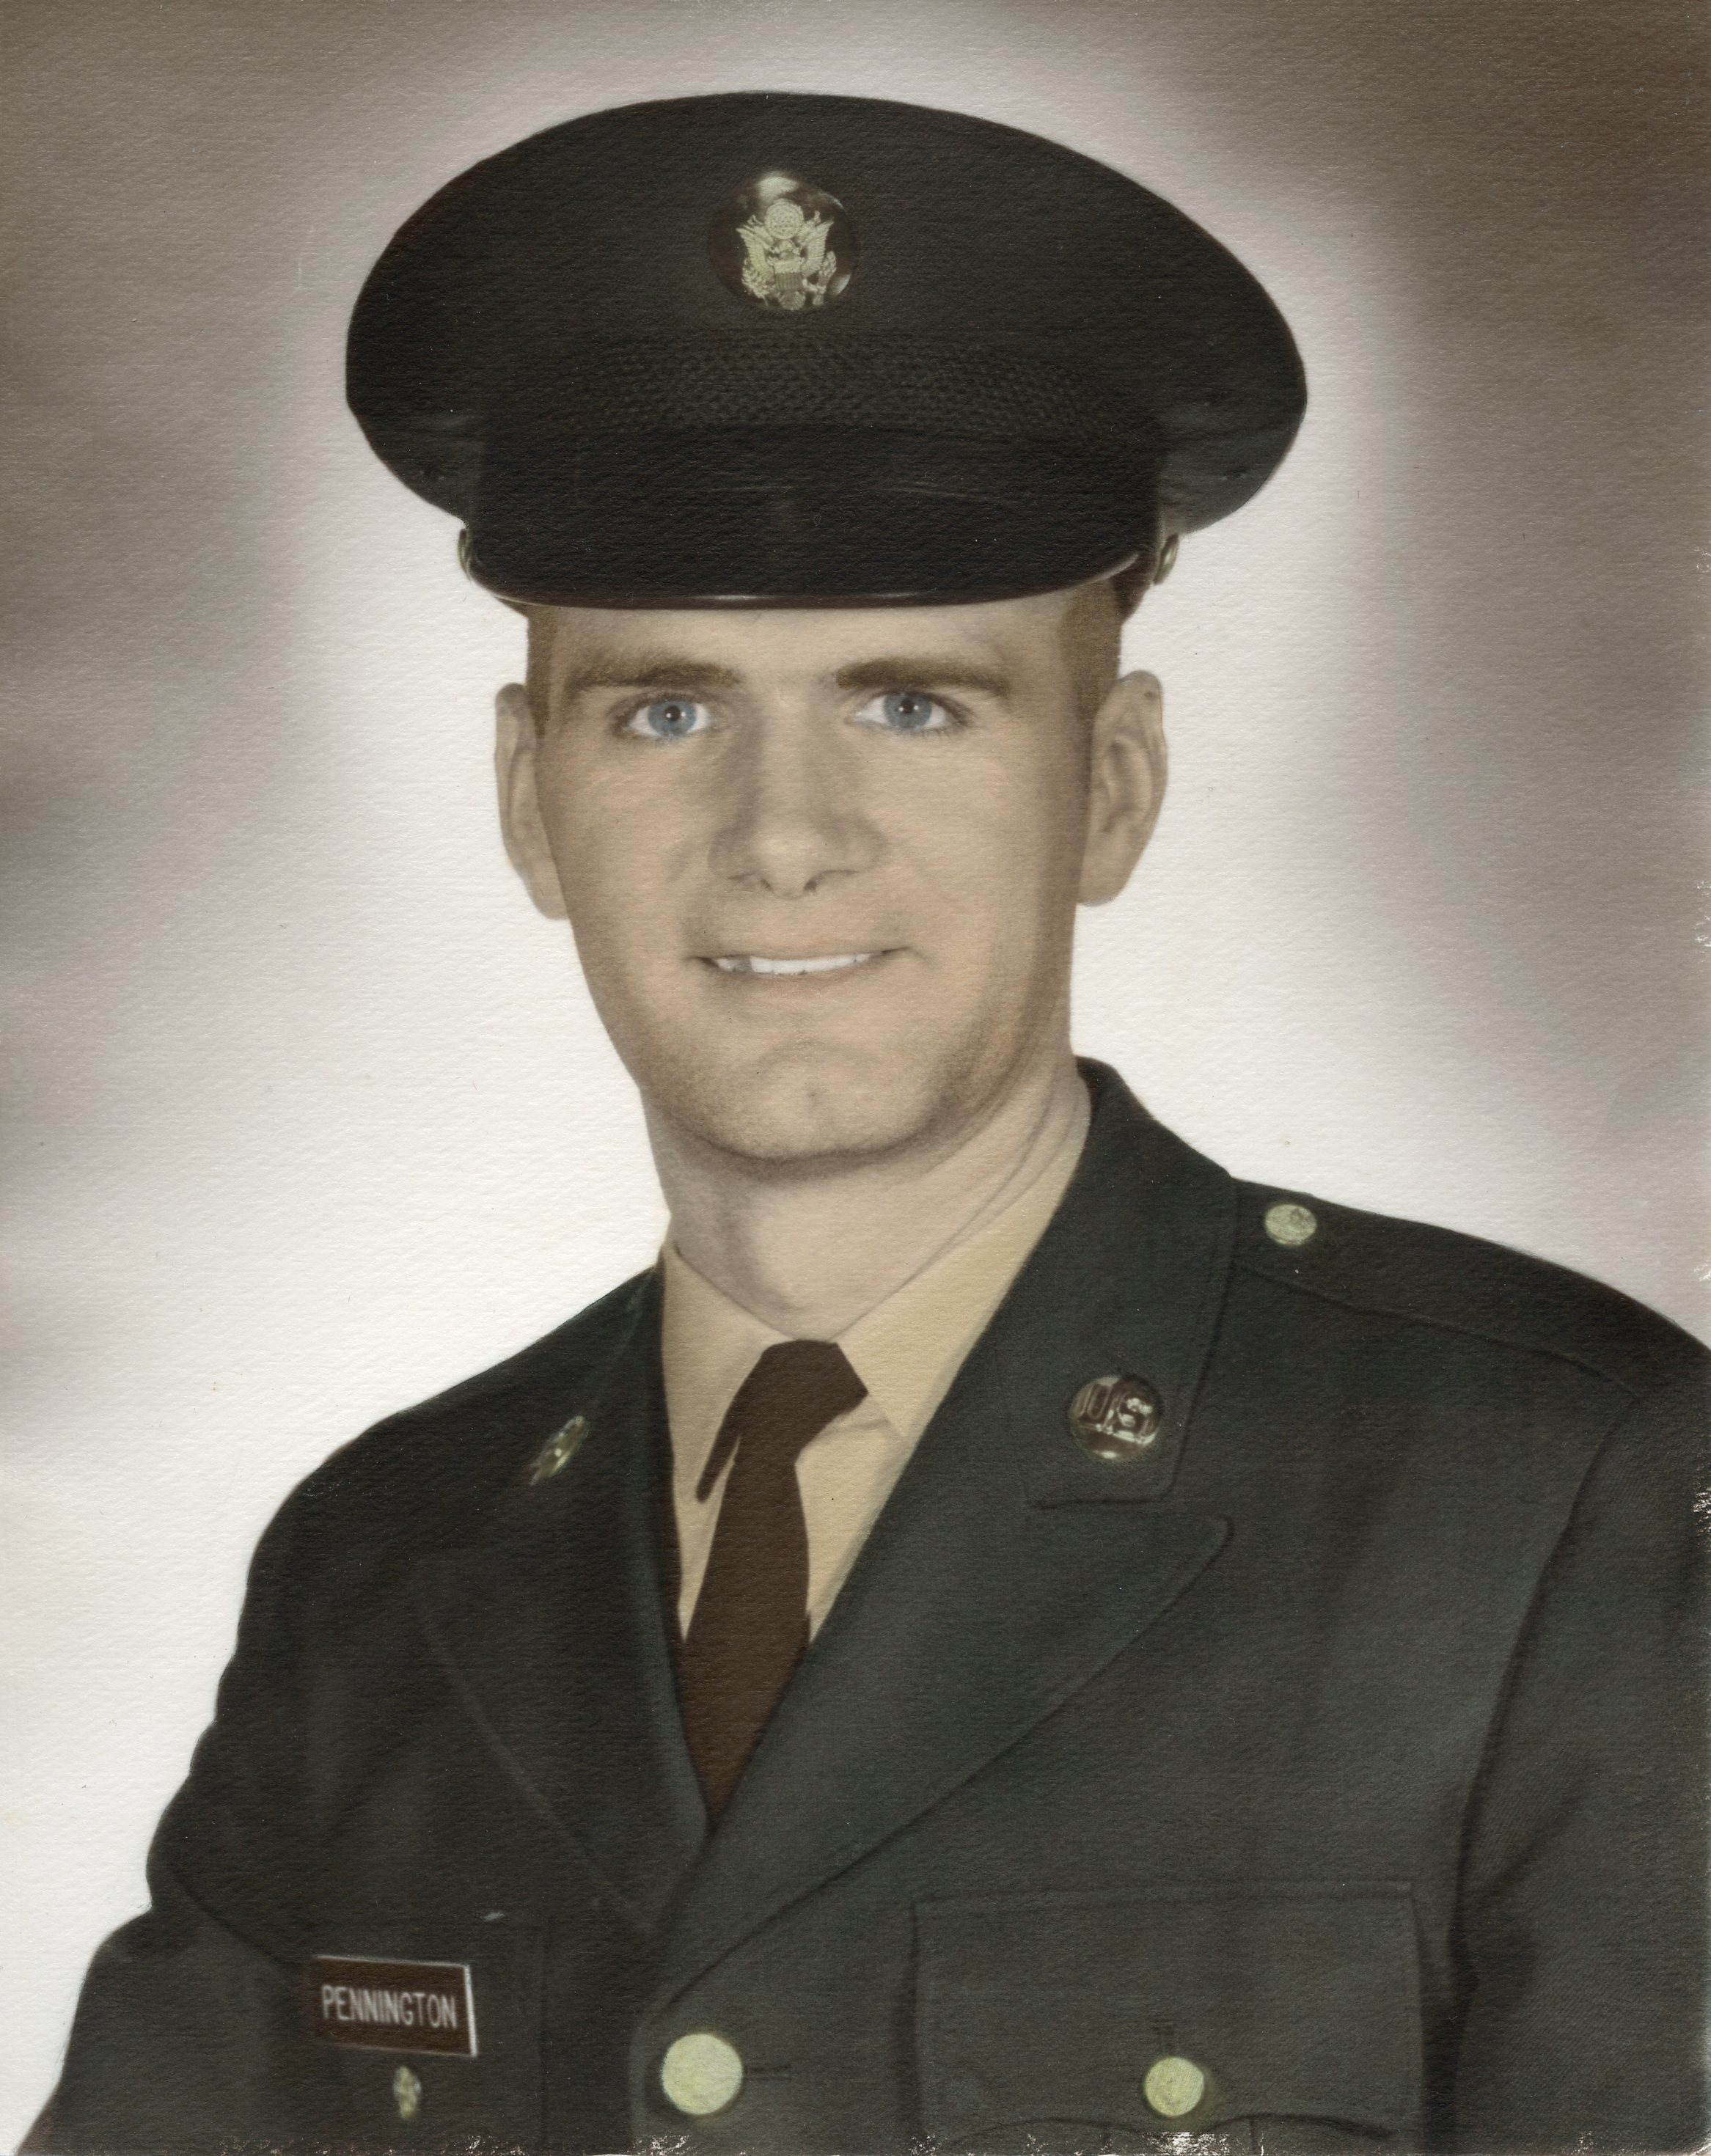 Ronald M. Pennington, Sr.